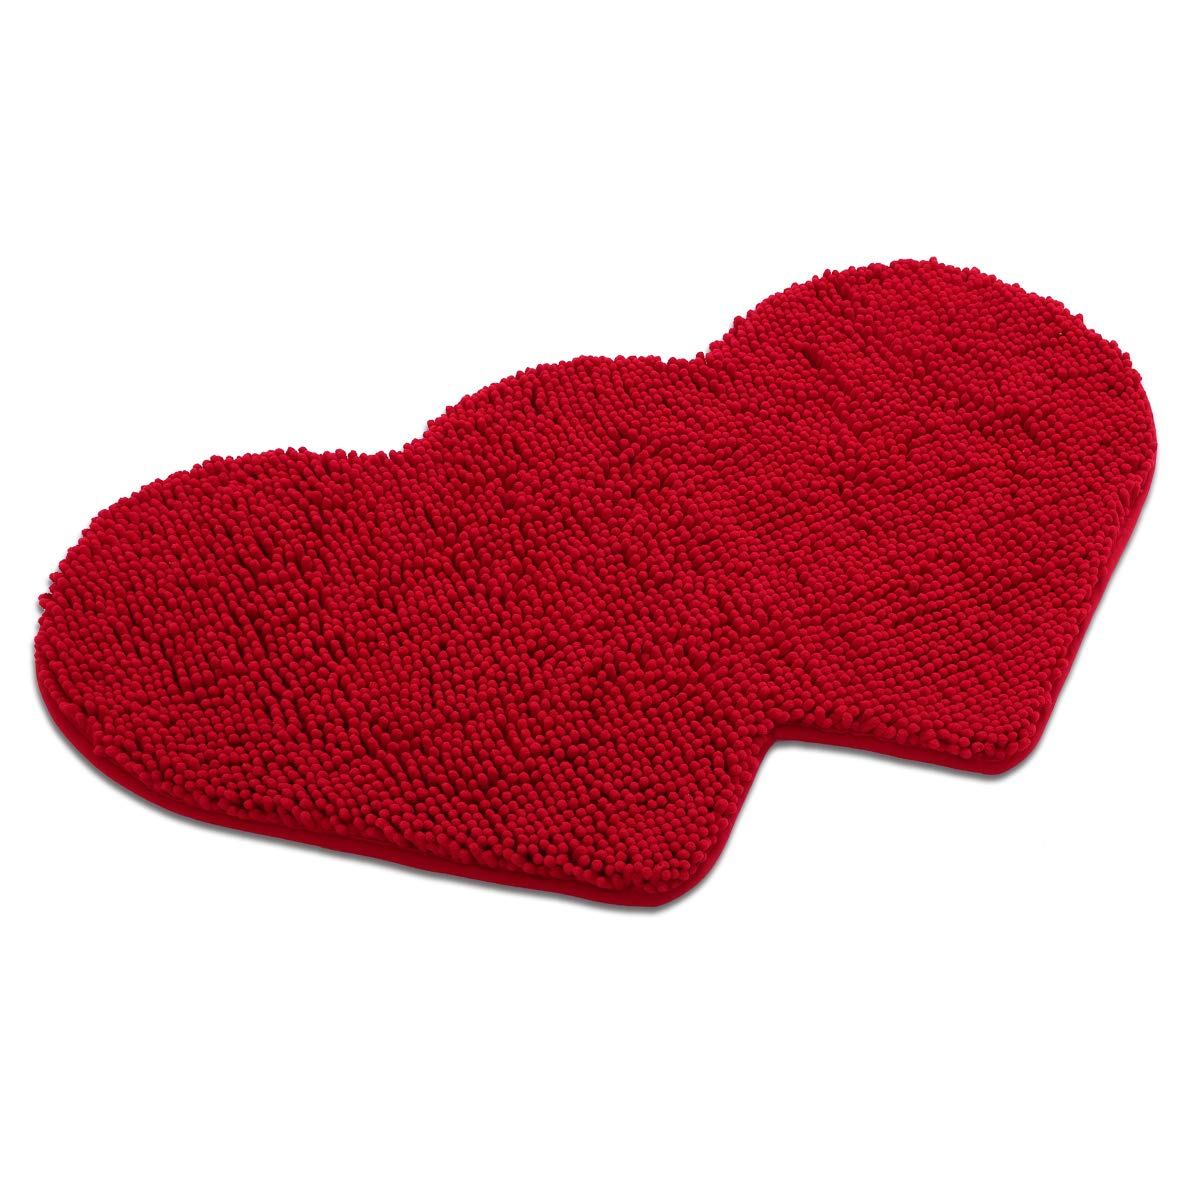 MAYSHINE Non-Slip Bathroom Rug Love Shaped Shag Shower fun Mat Machine-Washable with Water Absorbent Soft Microfibers Suitable for bedroom do with Water Absorbent Soft Microfibers (20.5X35 Inches Red)